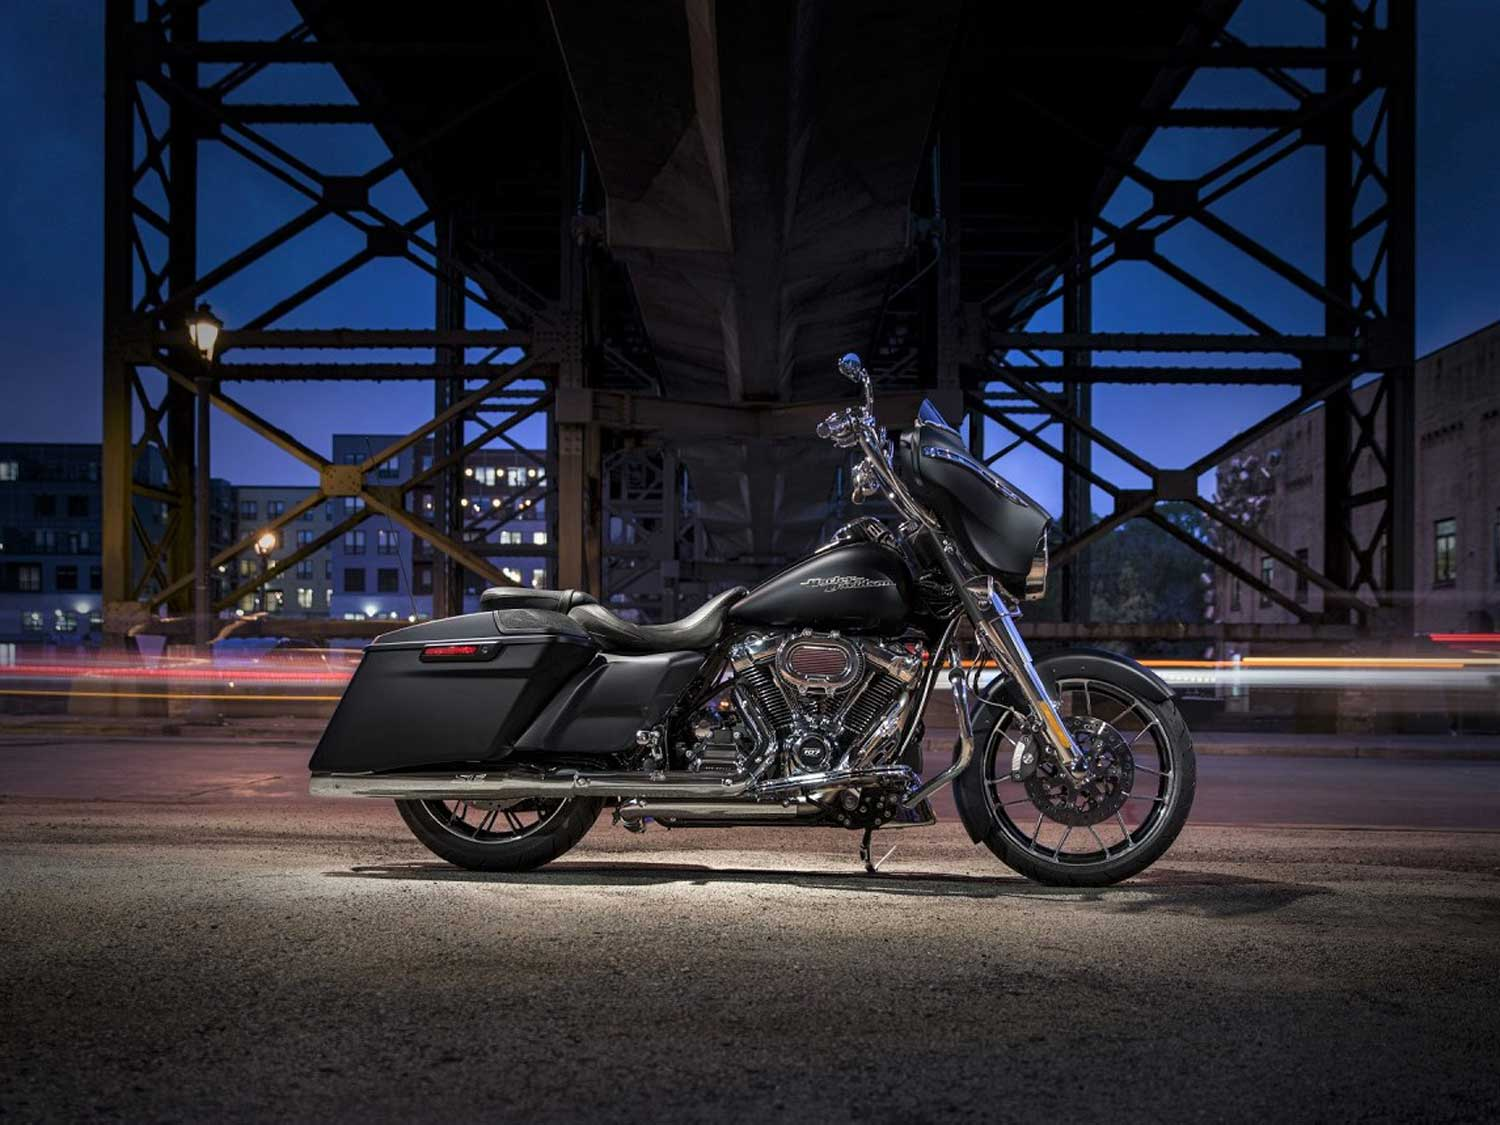 Harley S Special Introduces New Bagger Accessories Motorcycle Cruiser